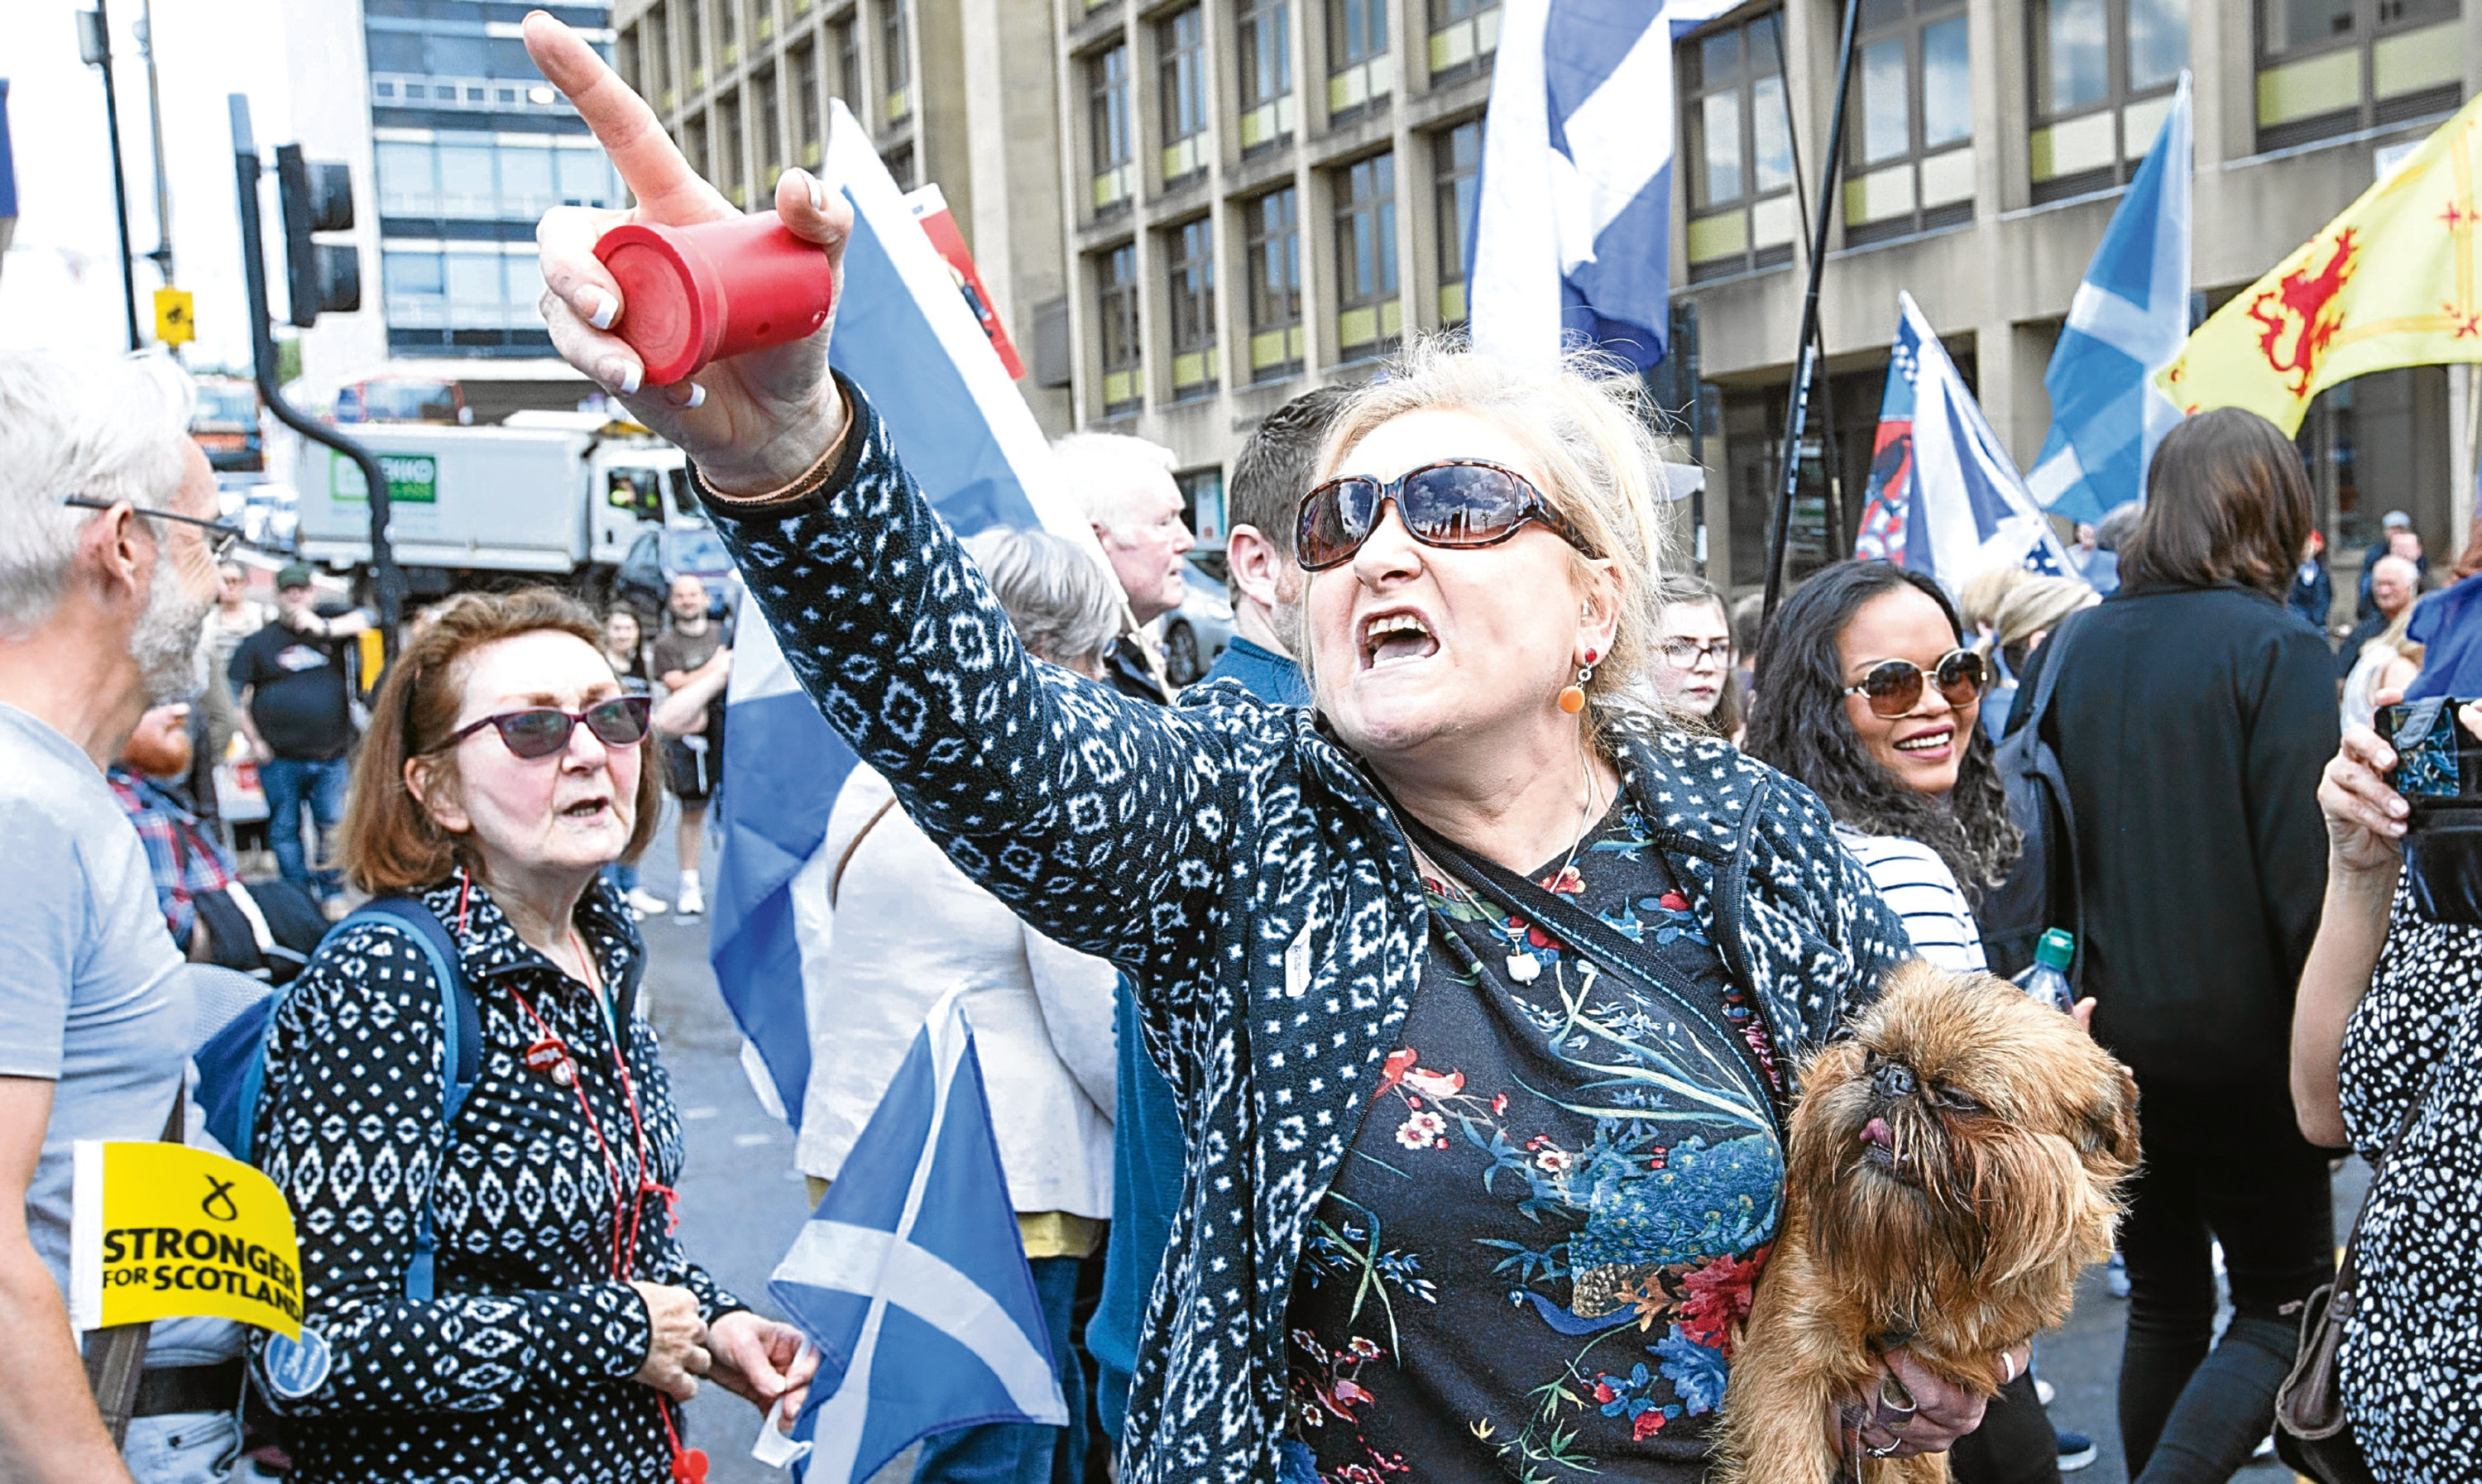 A woman gestures as Saturday's March for Independence is met by counter demonstrators in Glasgow.